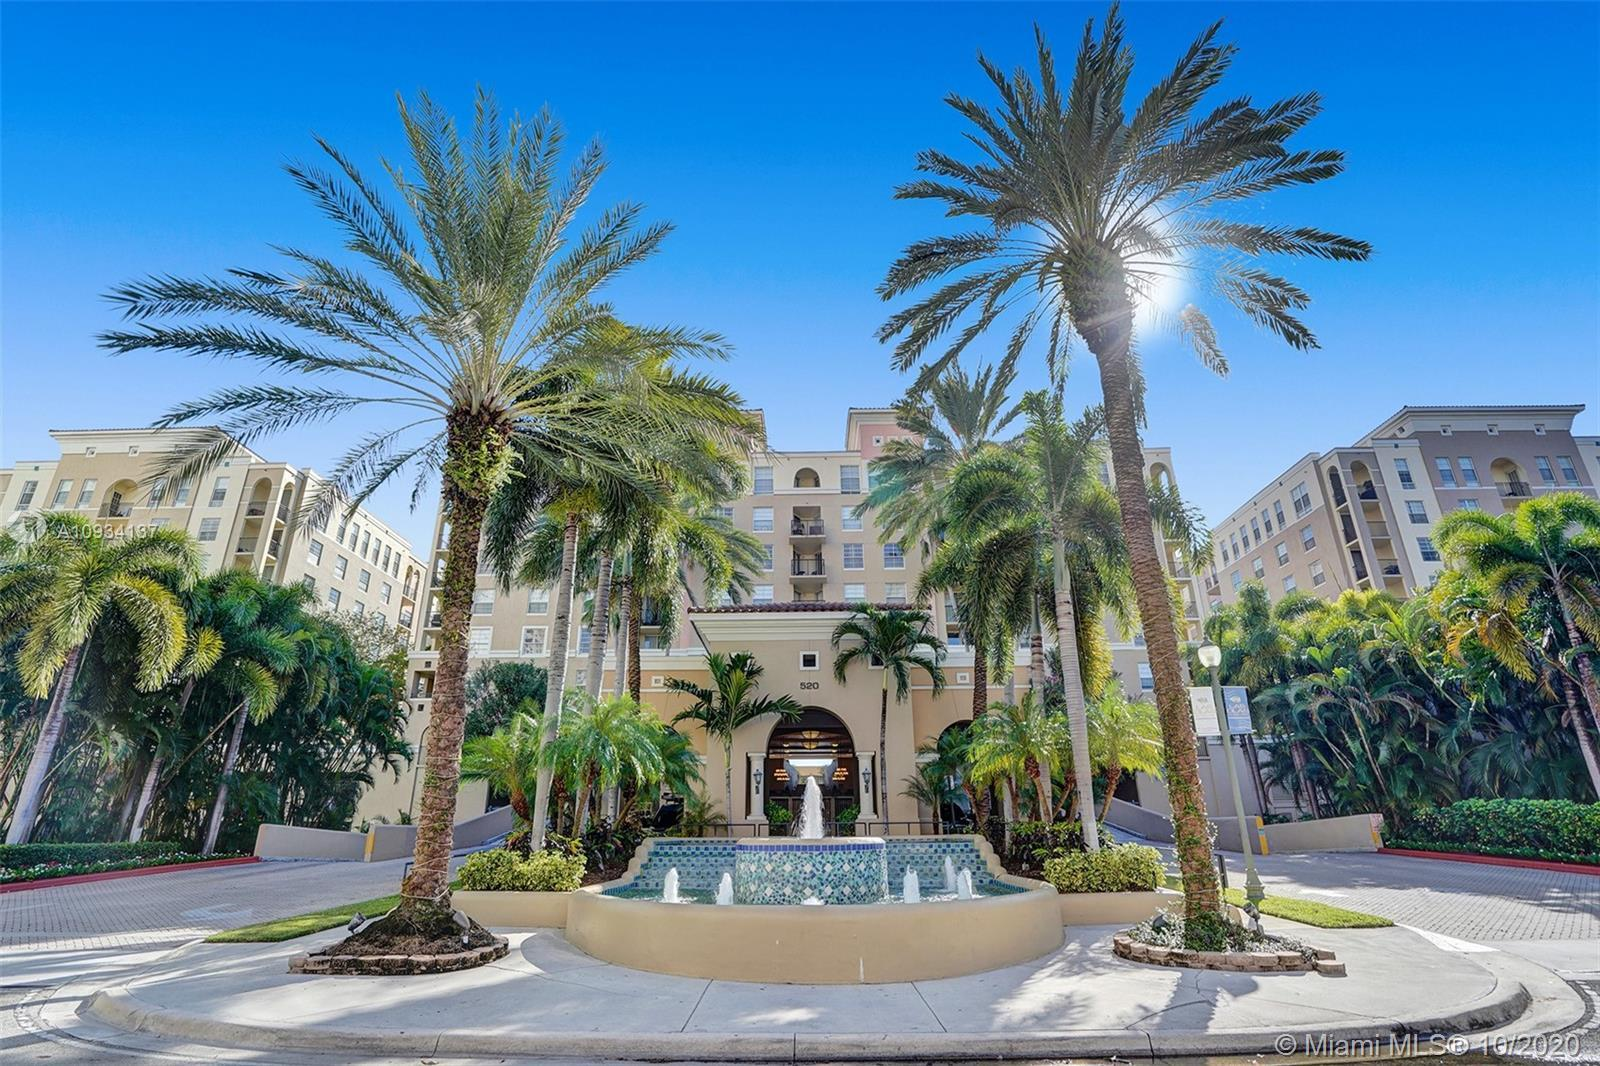 Brimming with amenities and nestled within some of Fort Lauderdale's most coveted neighborhoods, thi